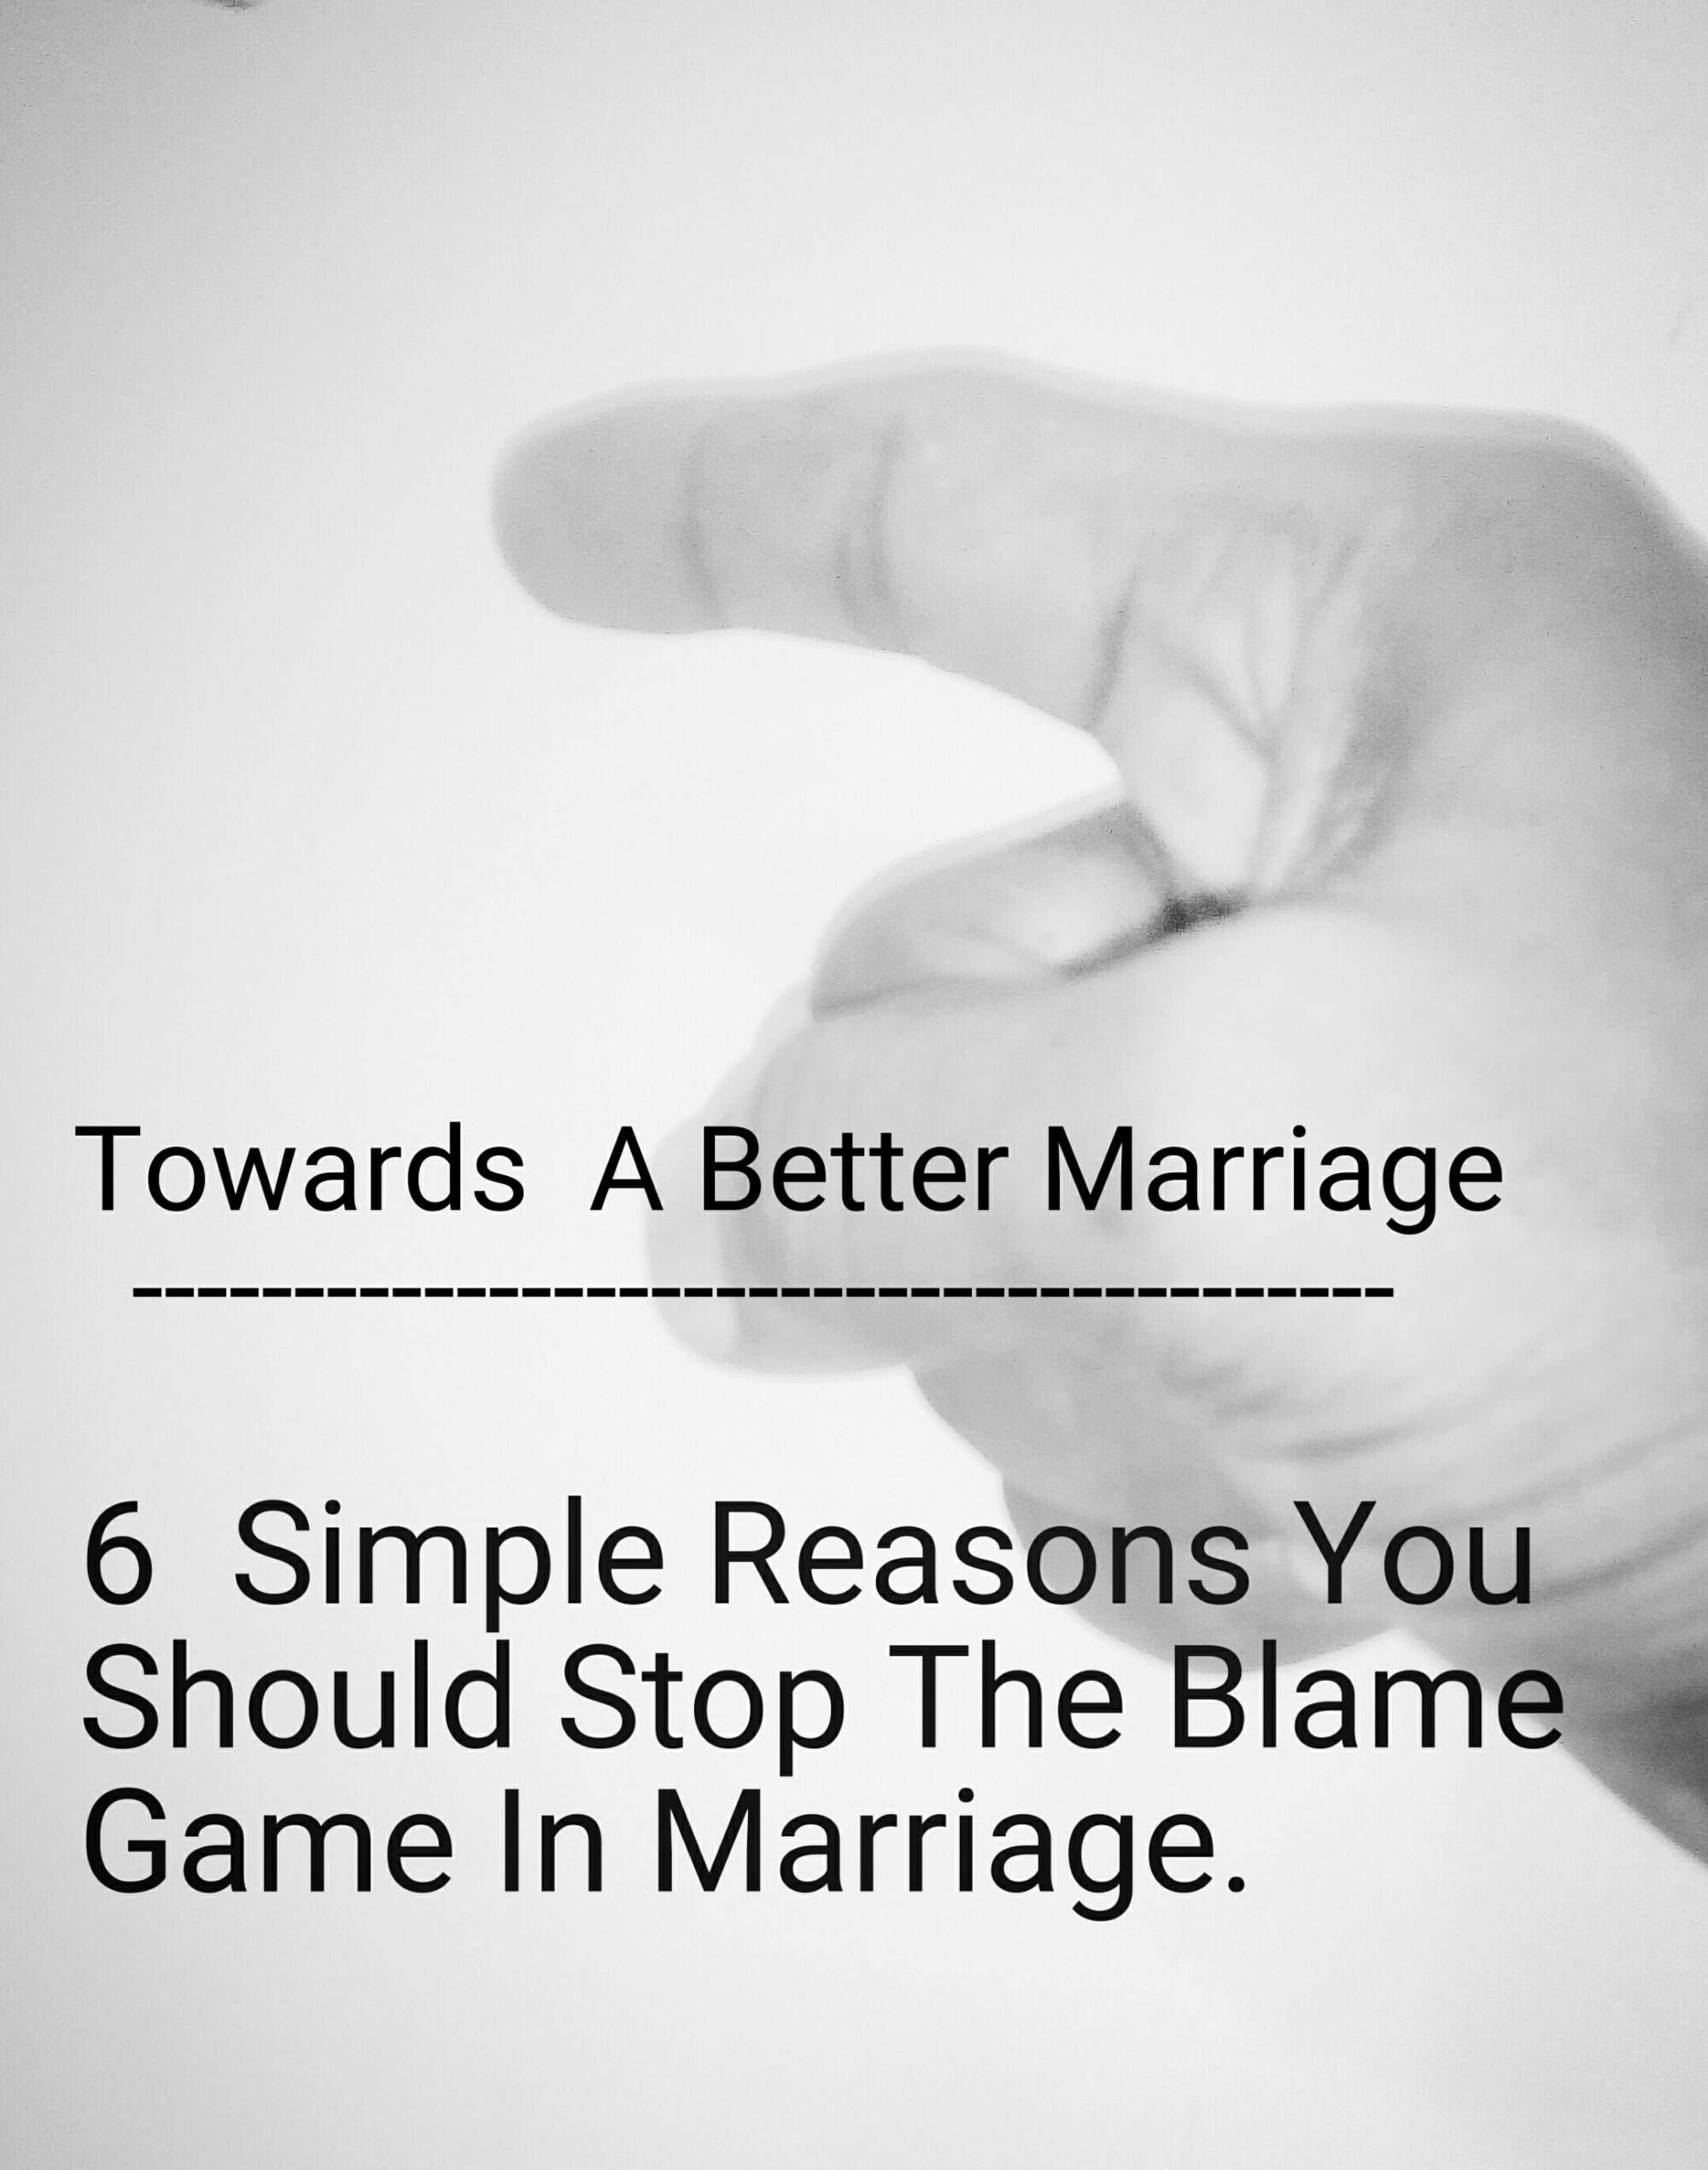 Don't blame your spouse